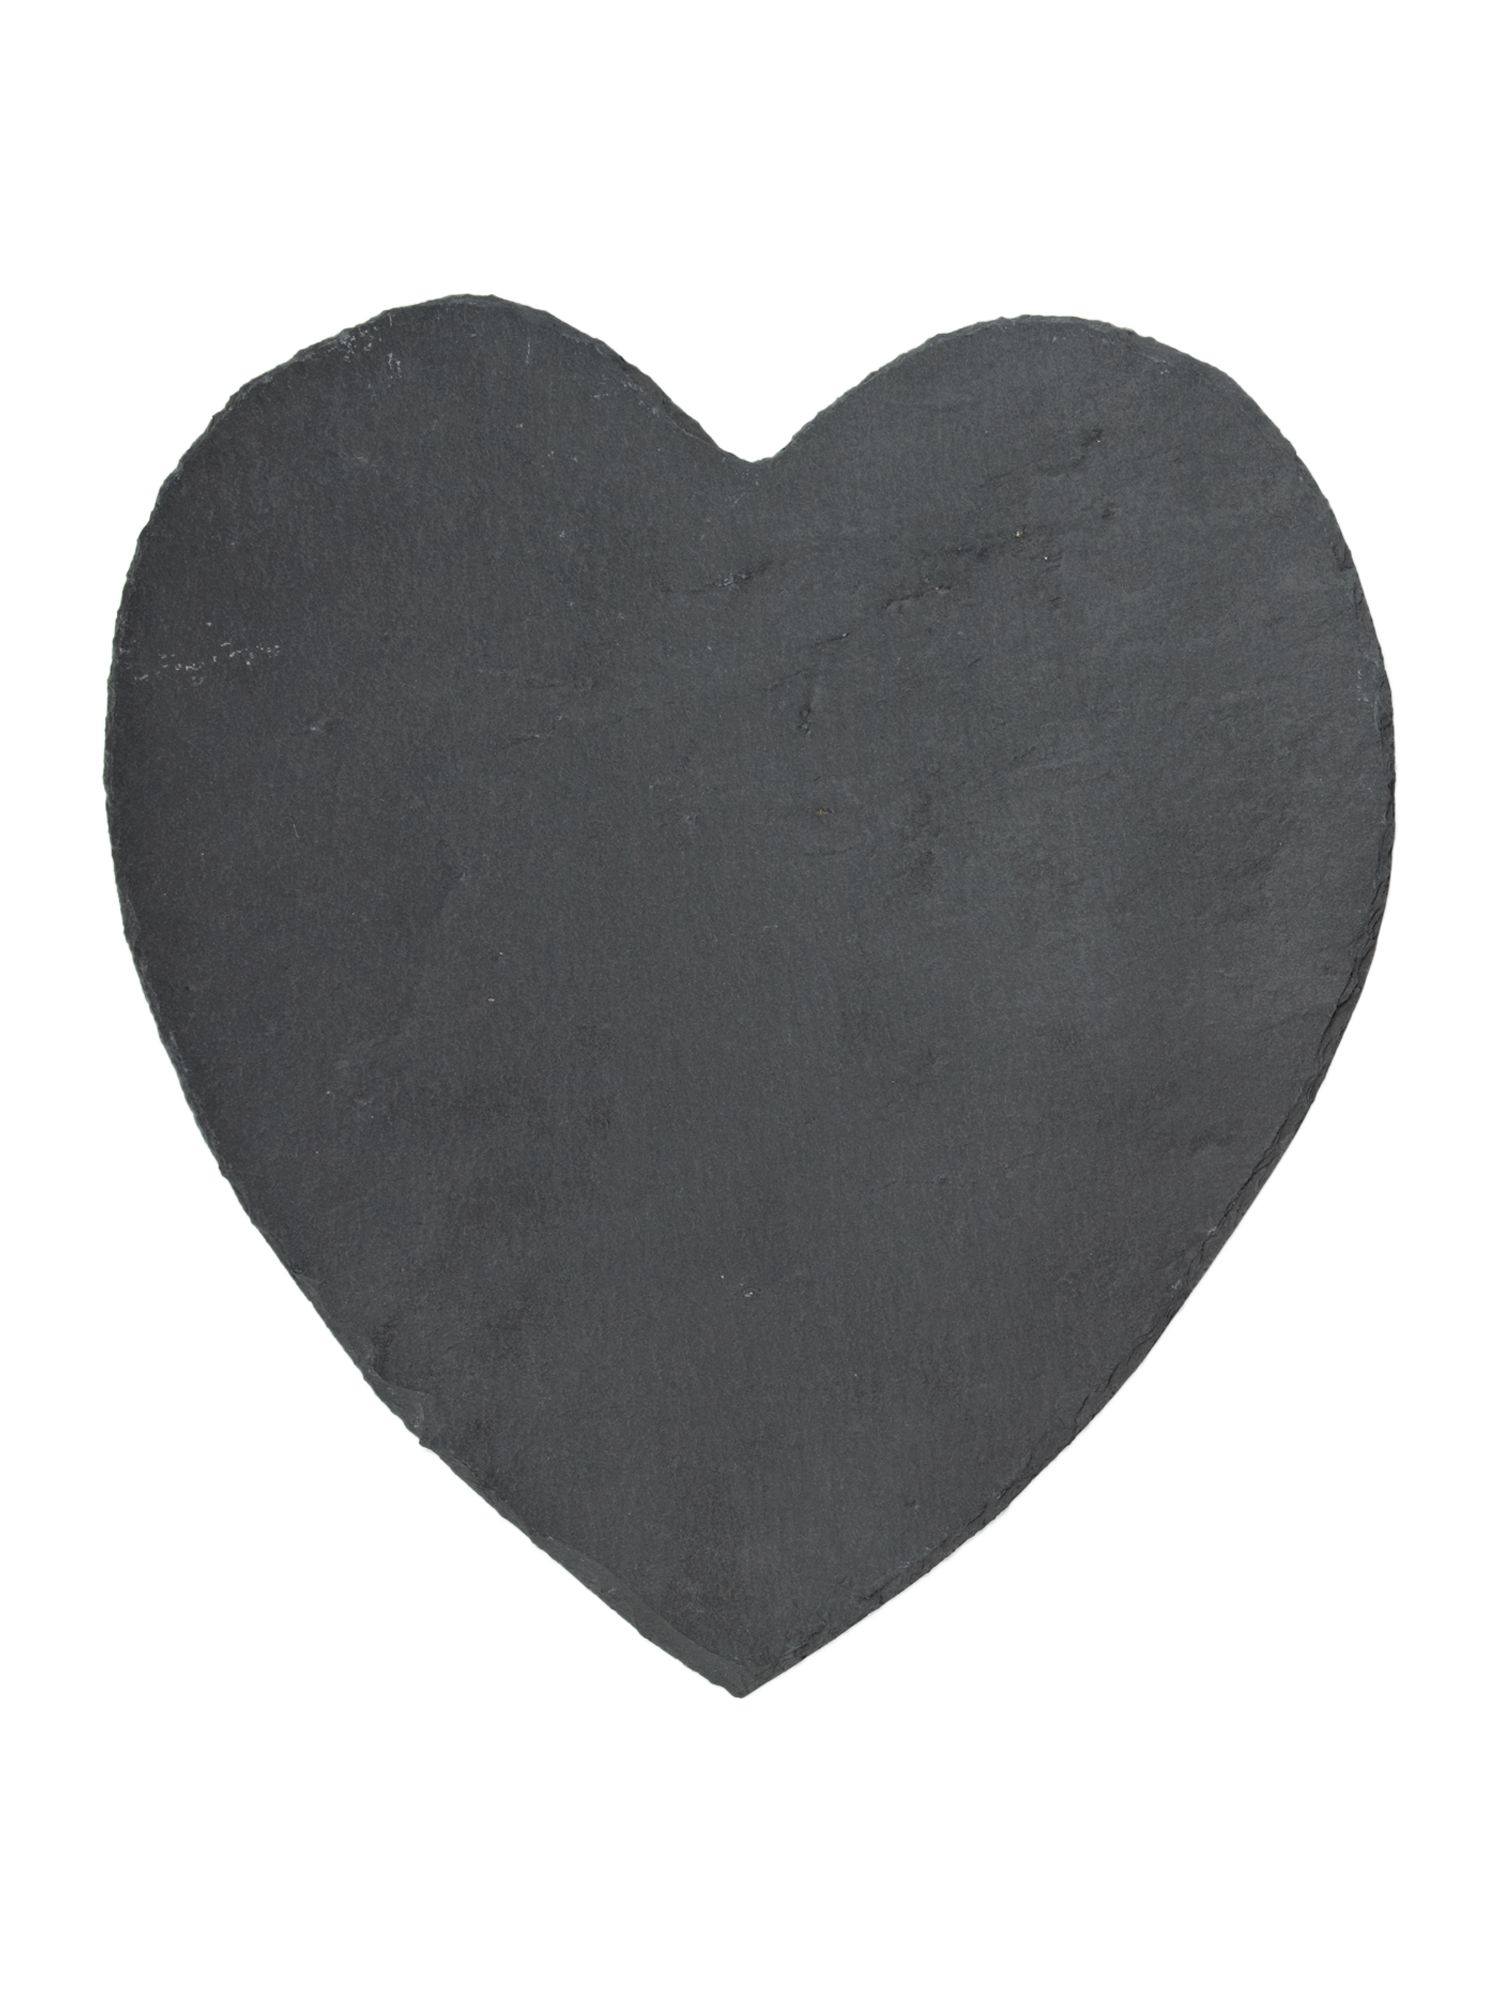 Slate heart placemats set of 2